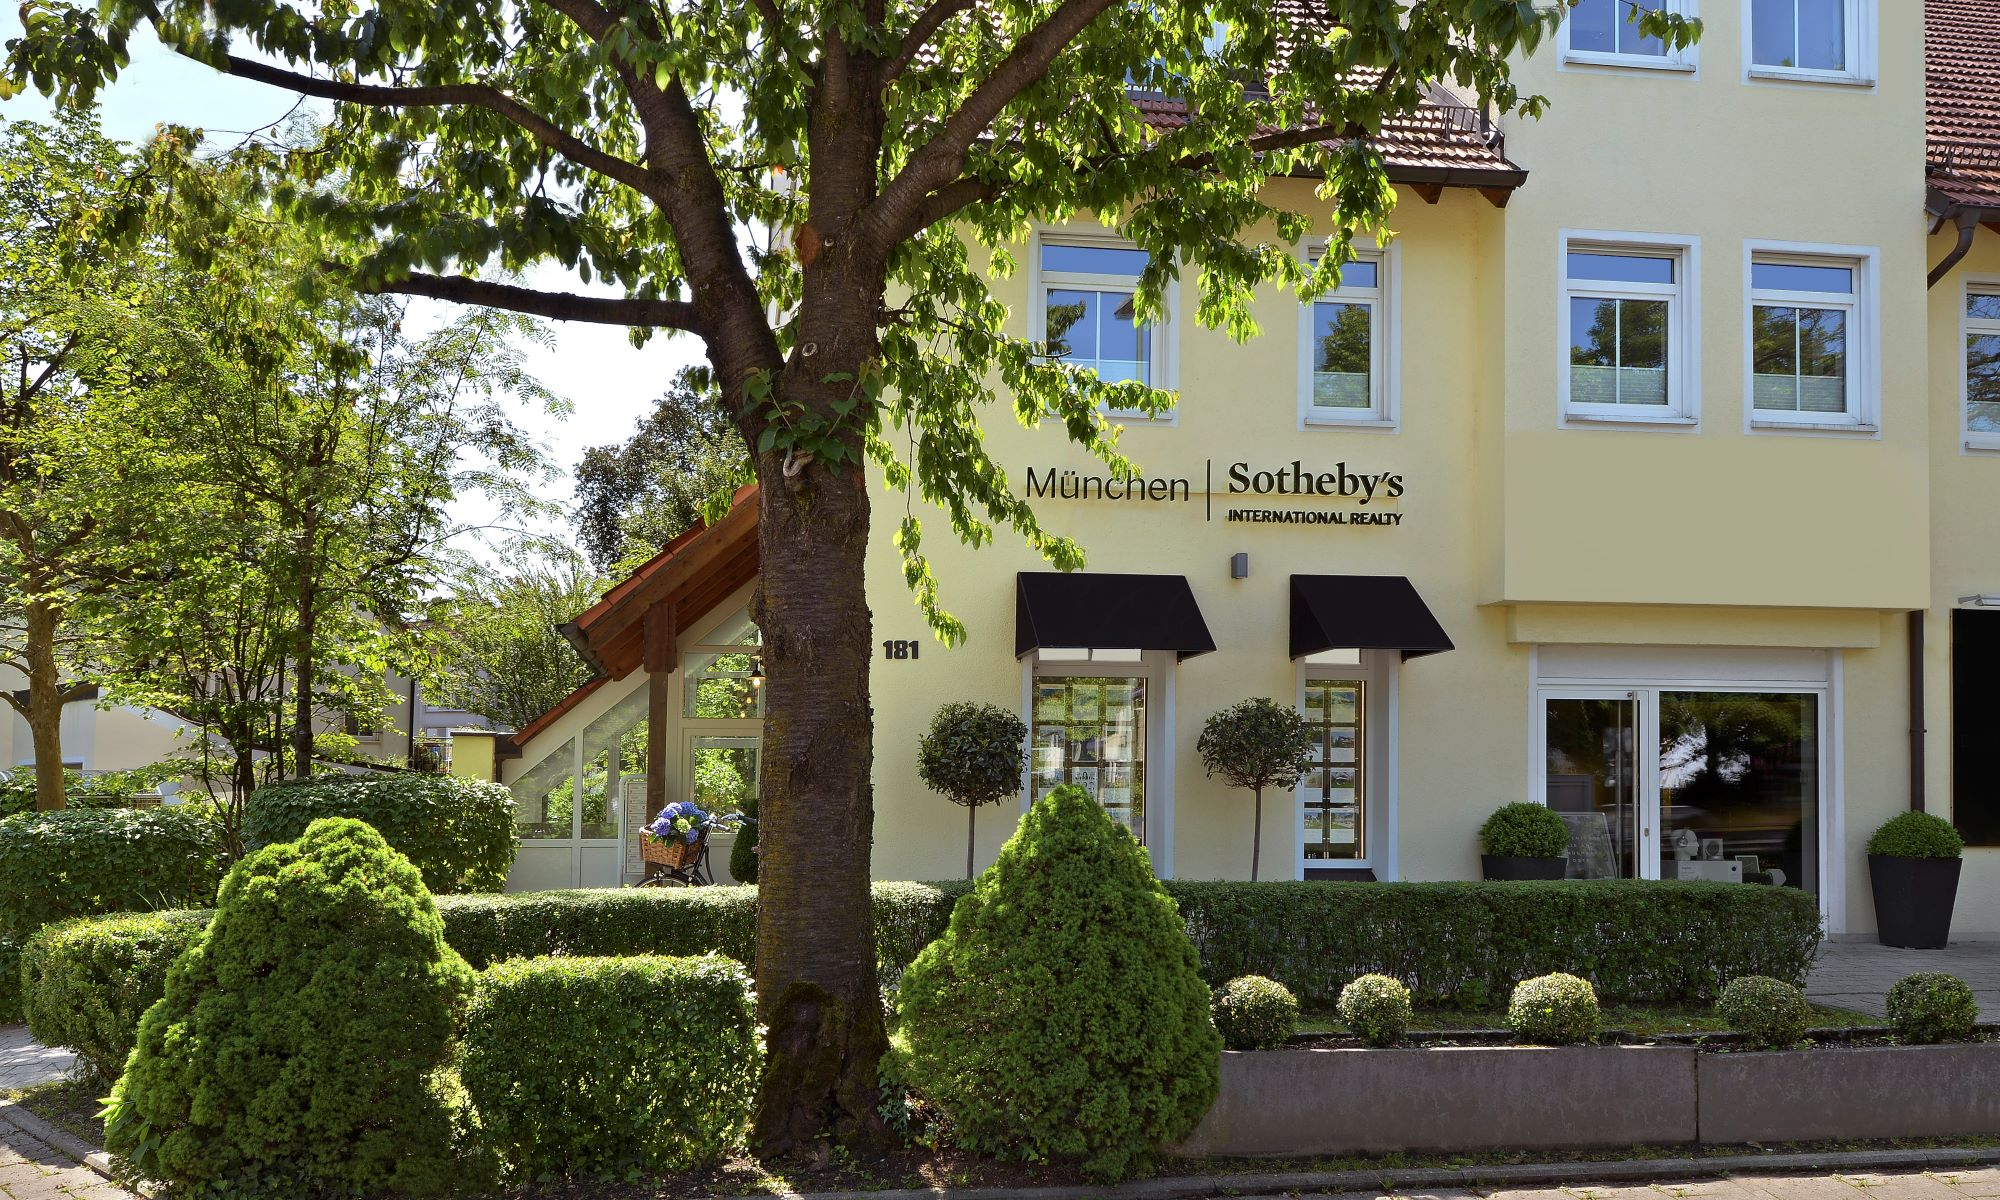 Office Munich Sotheby's International Realty Photo